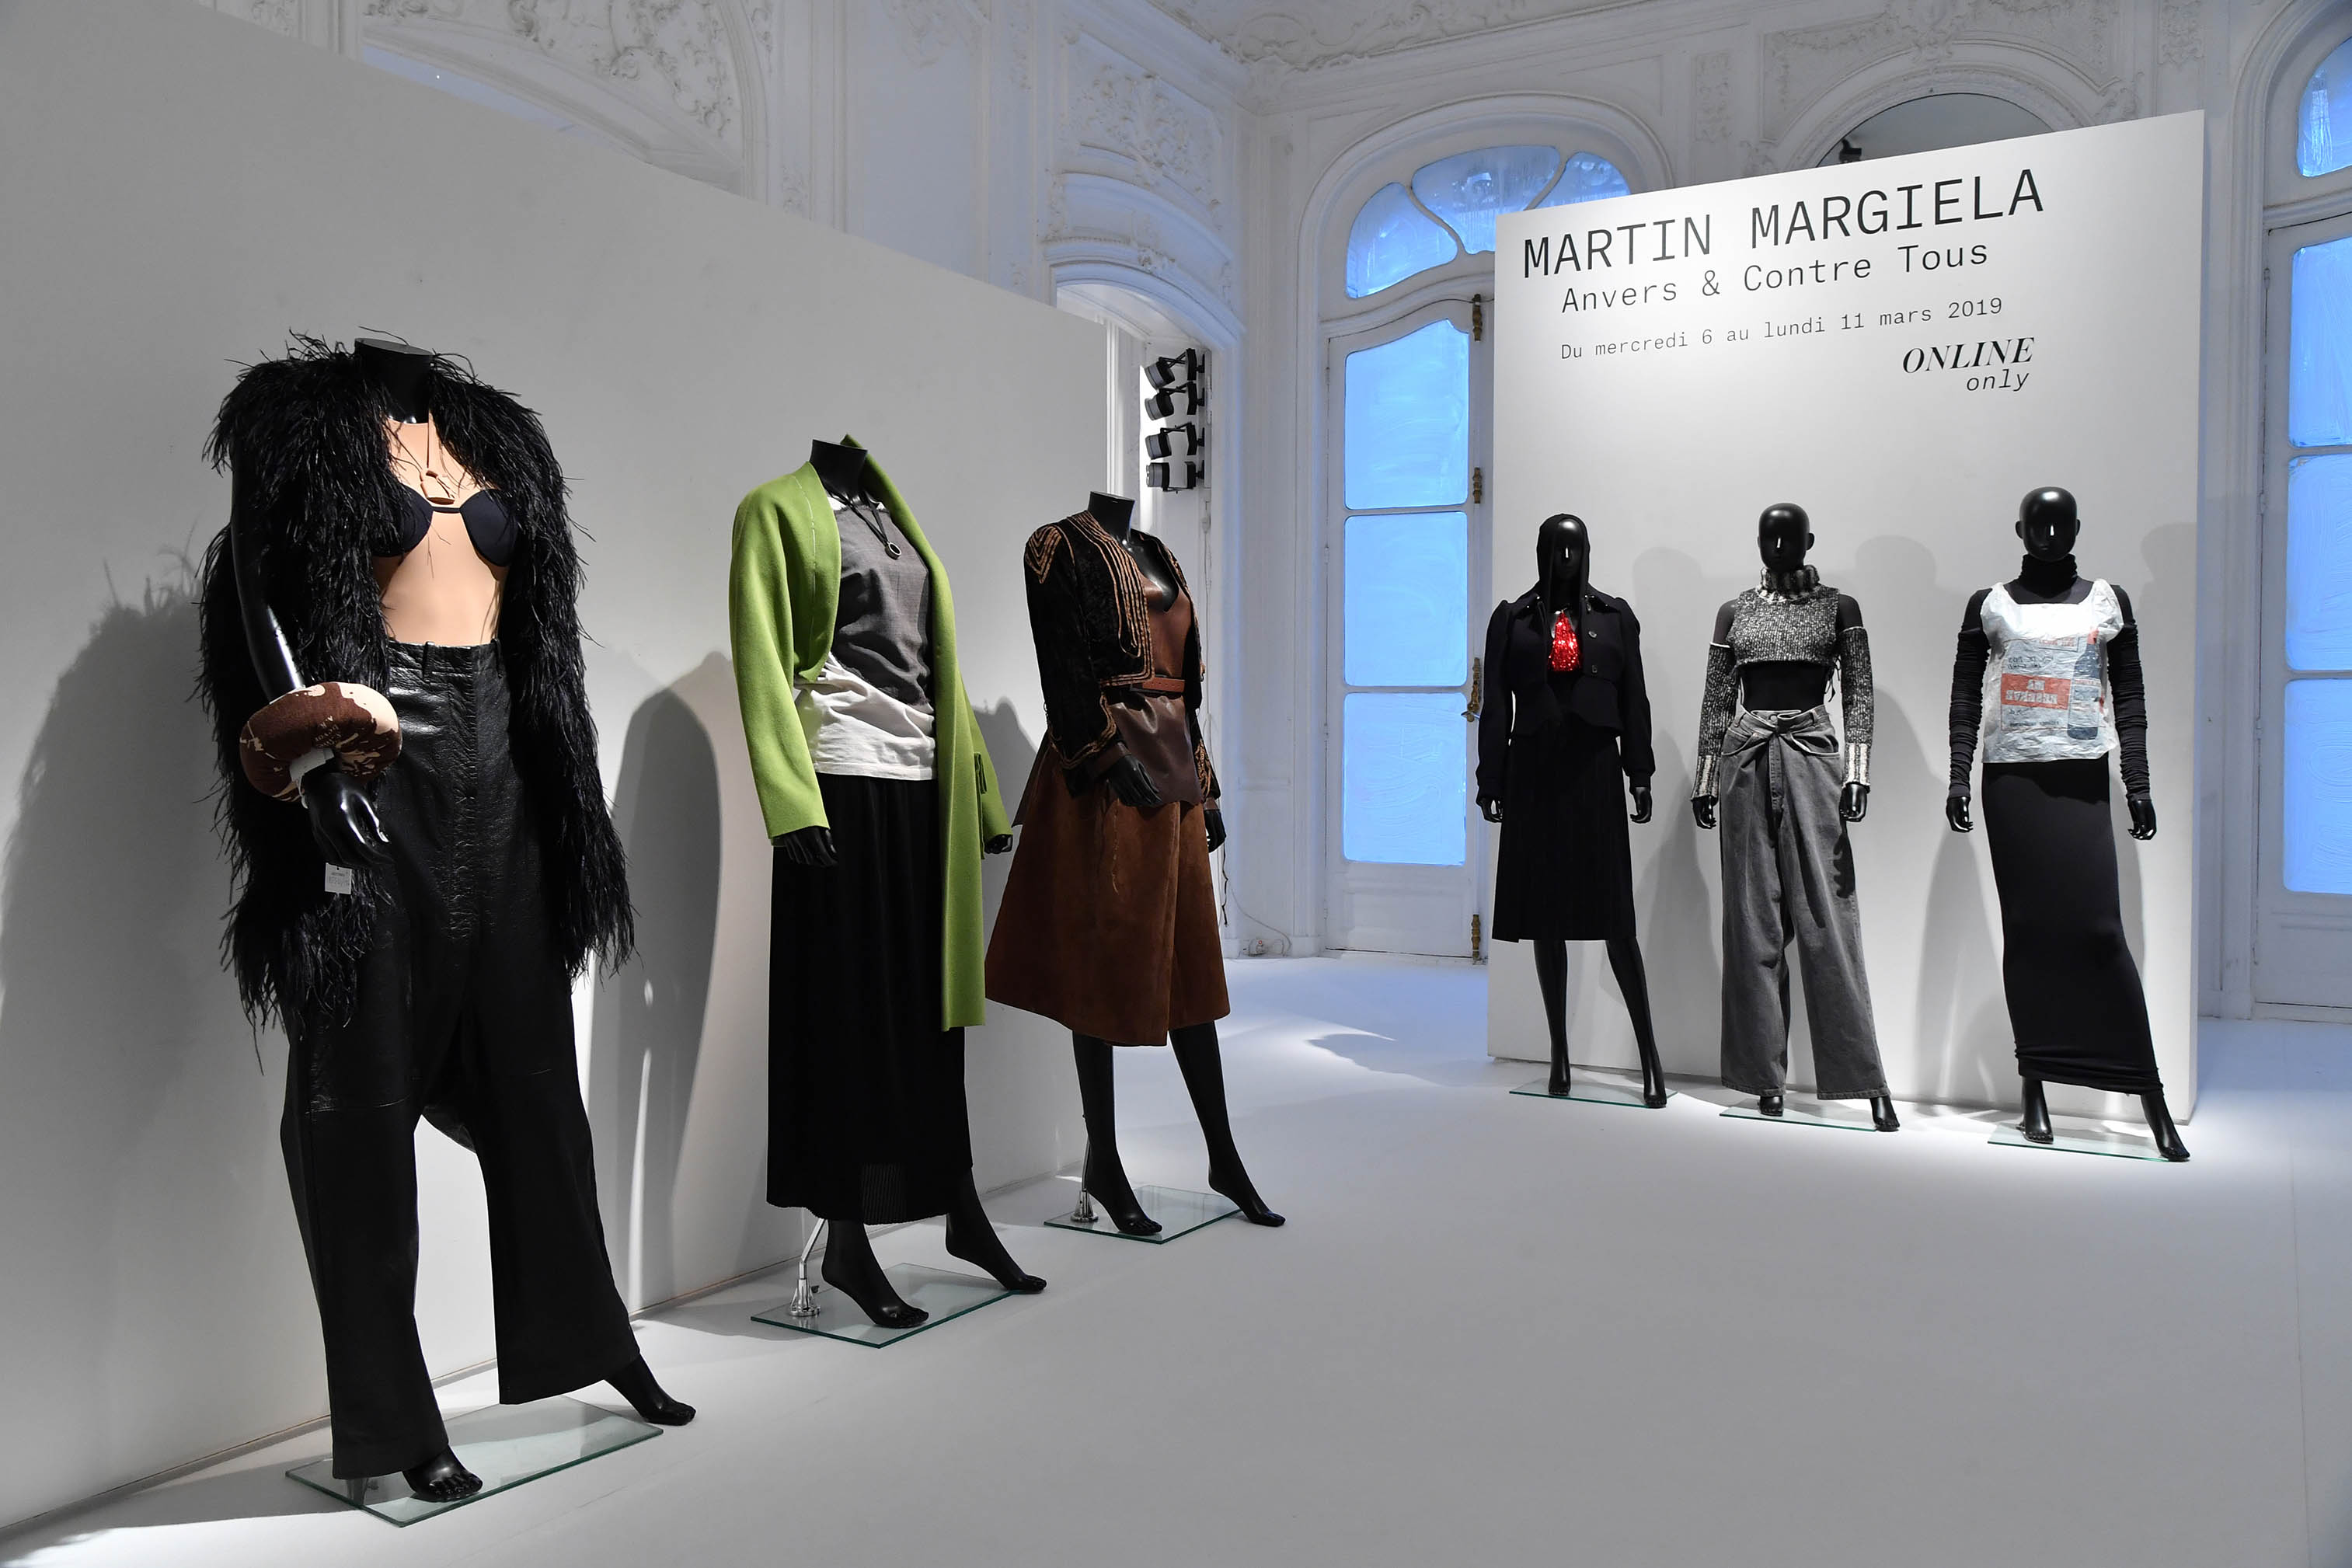 A look at the Martin Margiela designs up for auction.